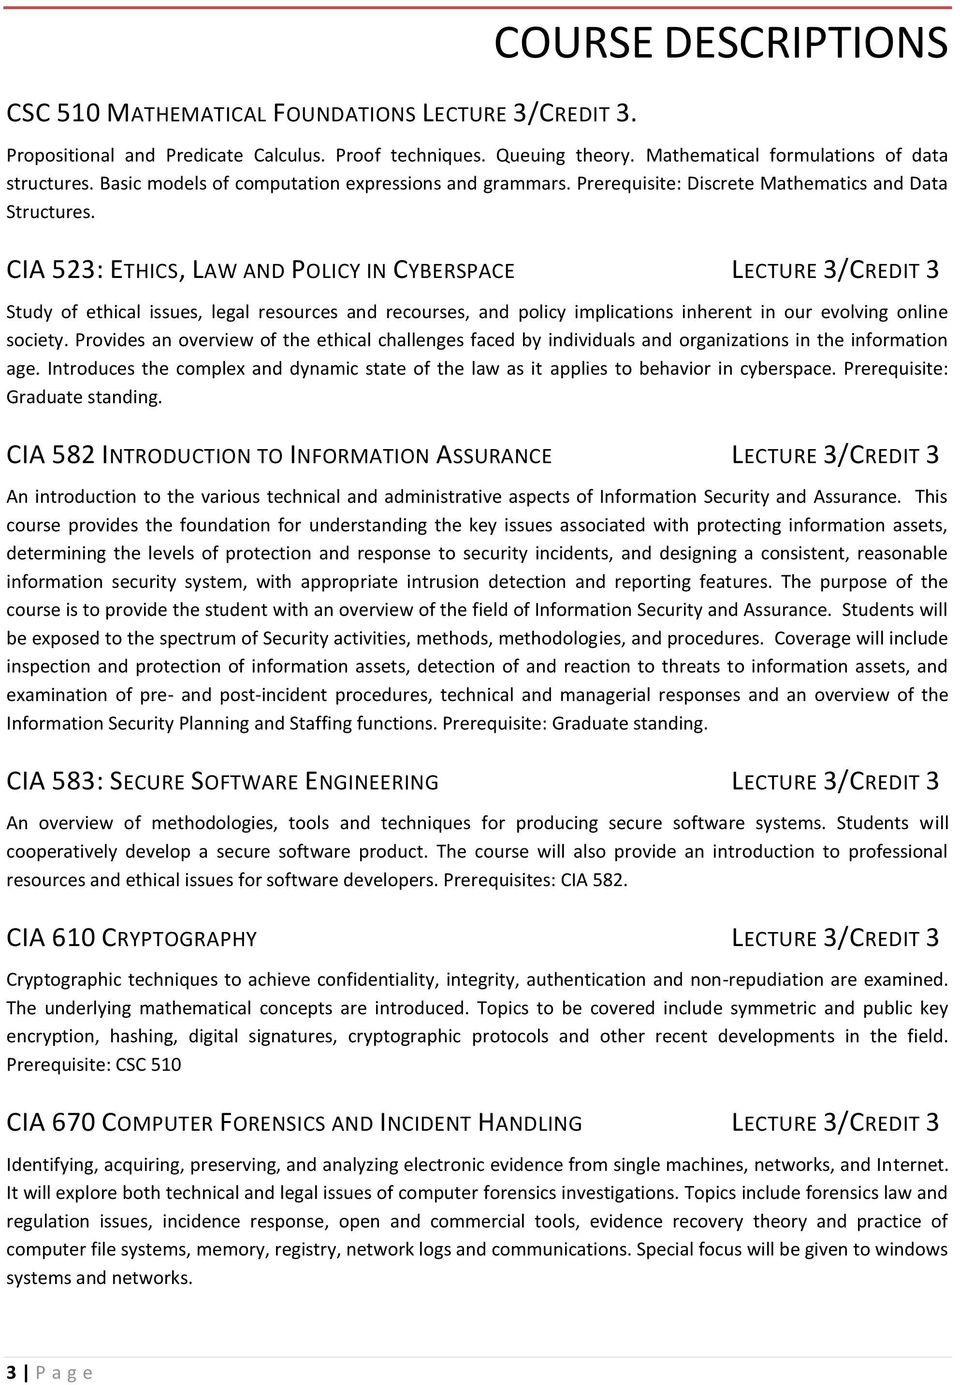 CIA 523: ETHICS, LAW AND POLICY IN CYBERSPACE LECTURE 3/CREDIT 3 Study of ethical issues, legal resources and recourses, and policy implications inherent in our evolving online society.